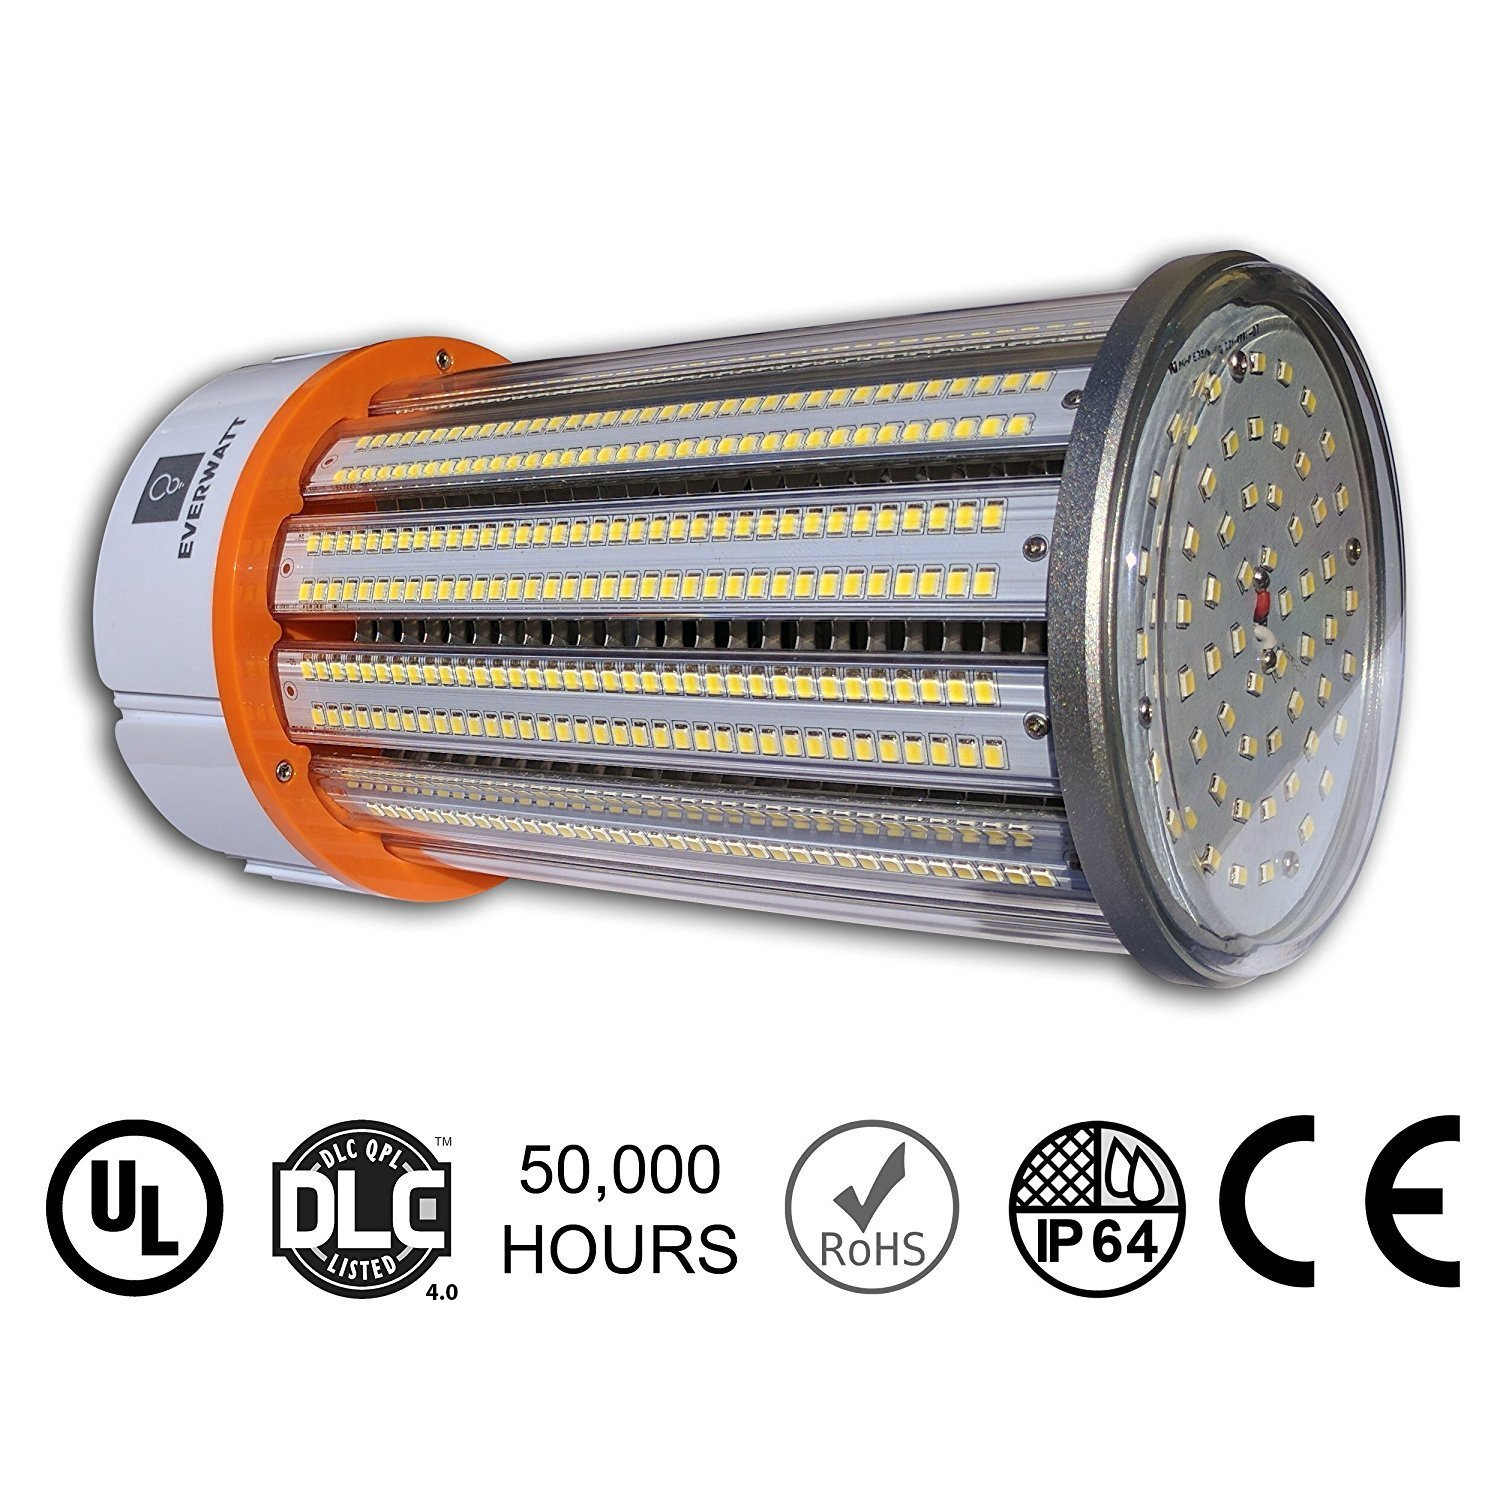 150W LED Corn Light Bulb, Large Mogul E39 Base, 21892 Lumens, 4000K, Replacement for 800W to 1000W Equivalent Metal Halide Bulb, HID, CFL, HPS by EverWatt